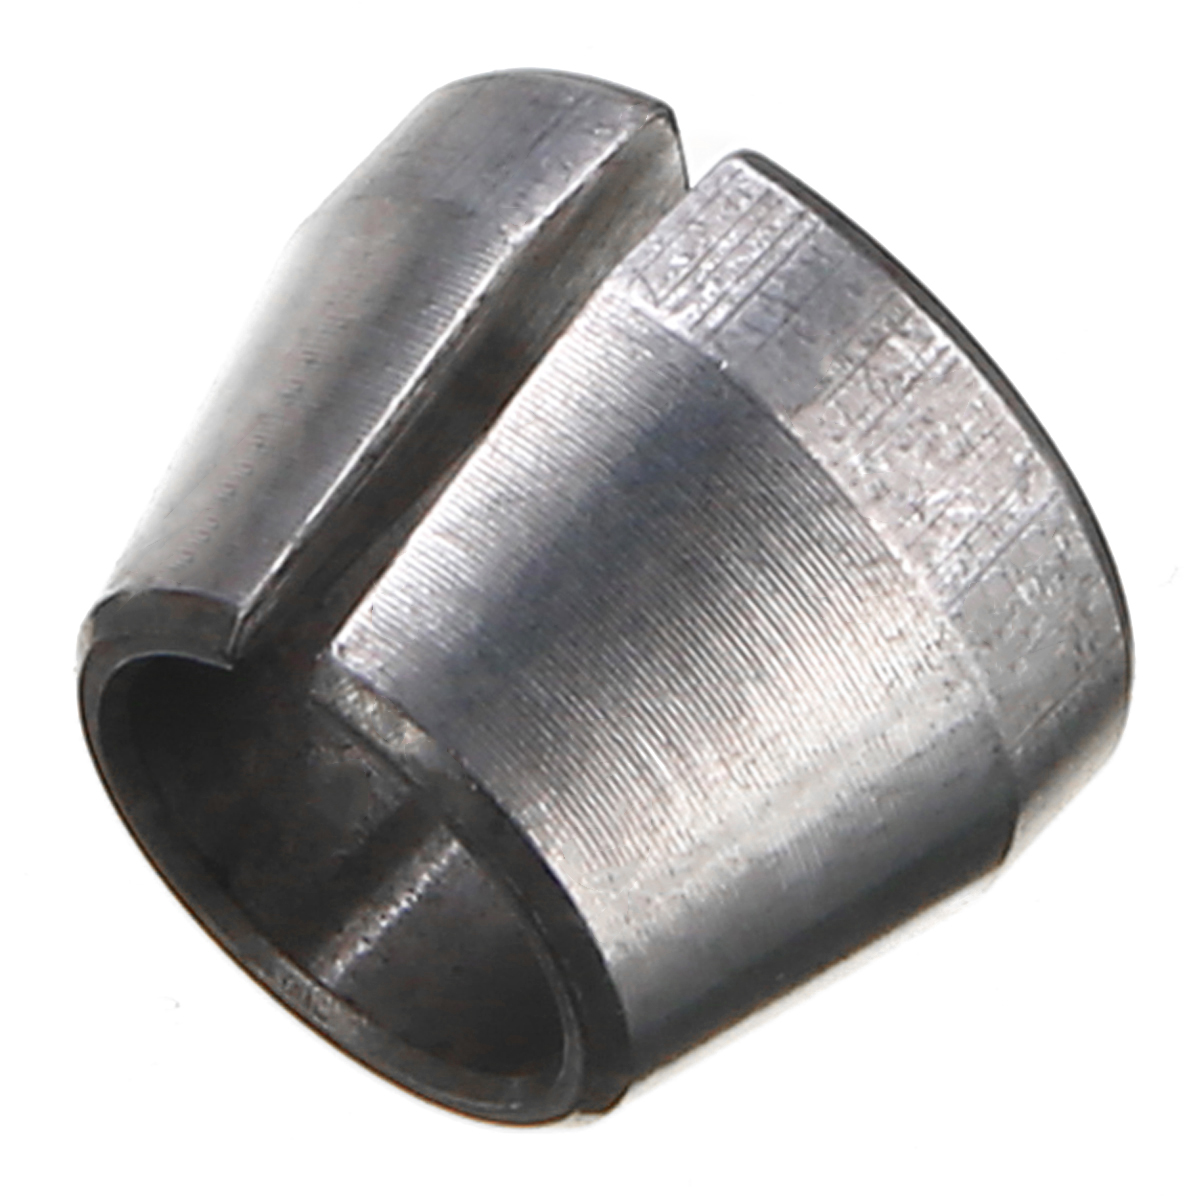 New 6.35mm Collet Cone Replace 11x8mm For Makita 763608-8 3708F 3707FC 3706 3707F 3705 Router Collet